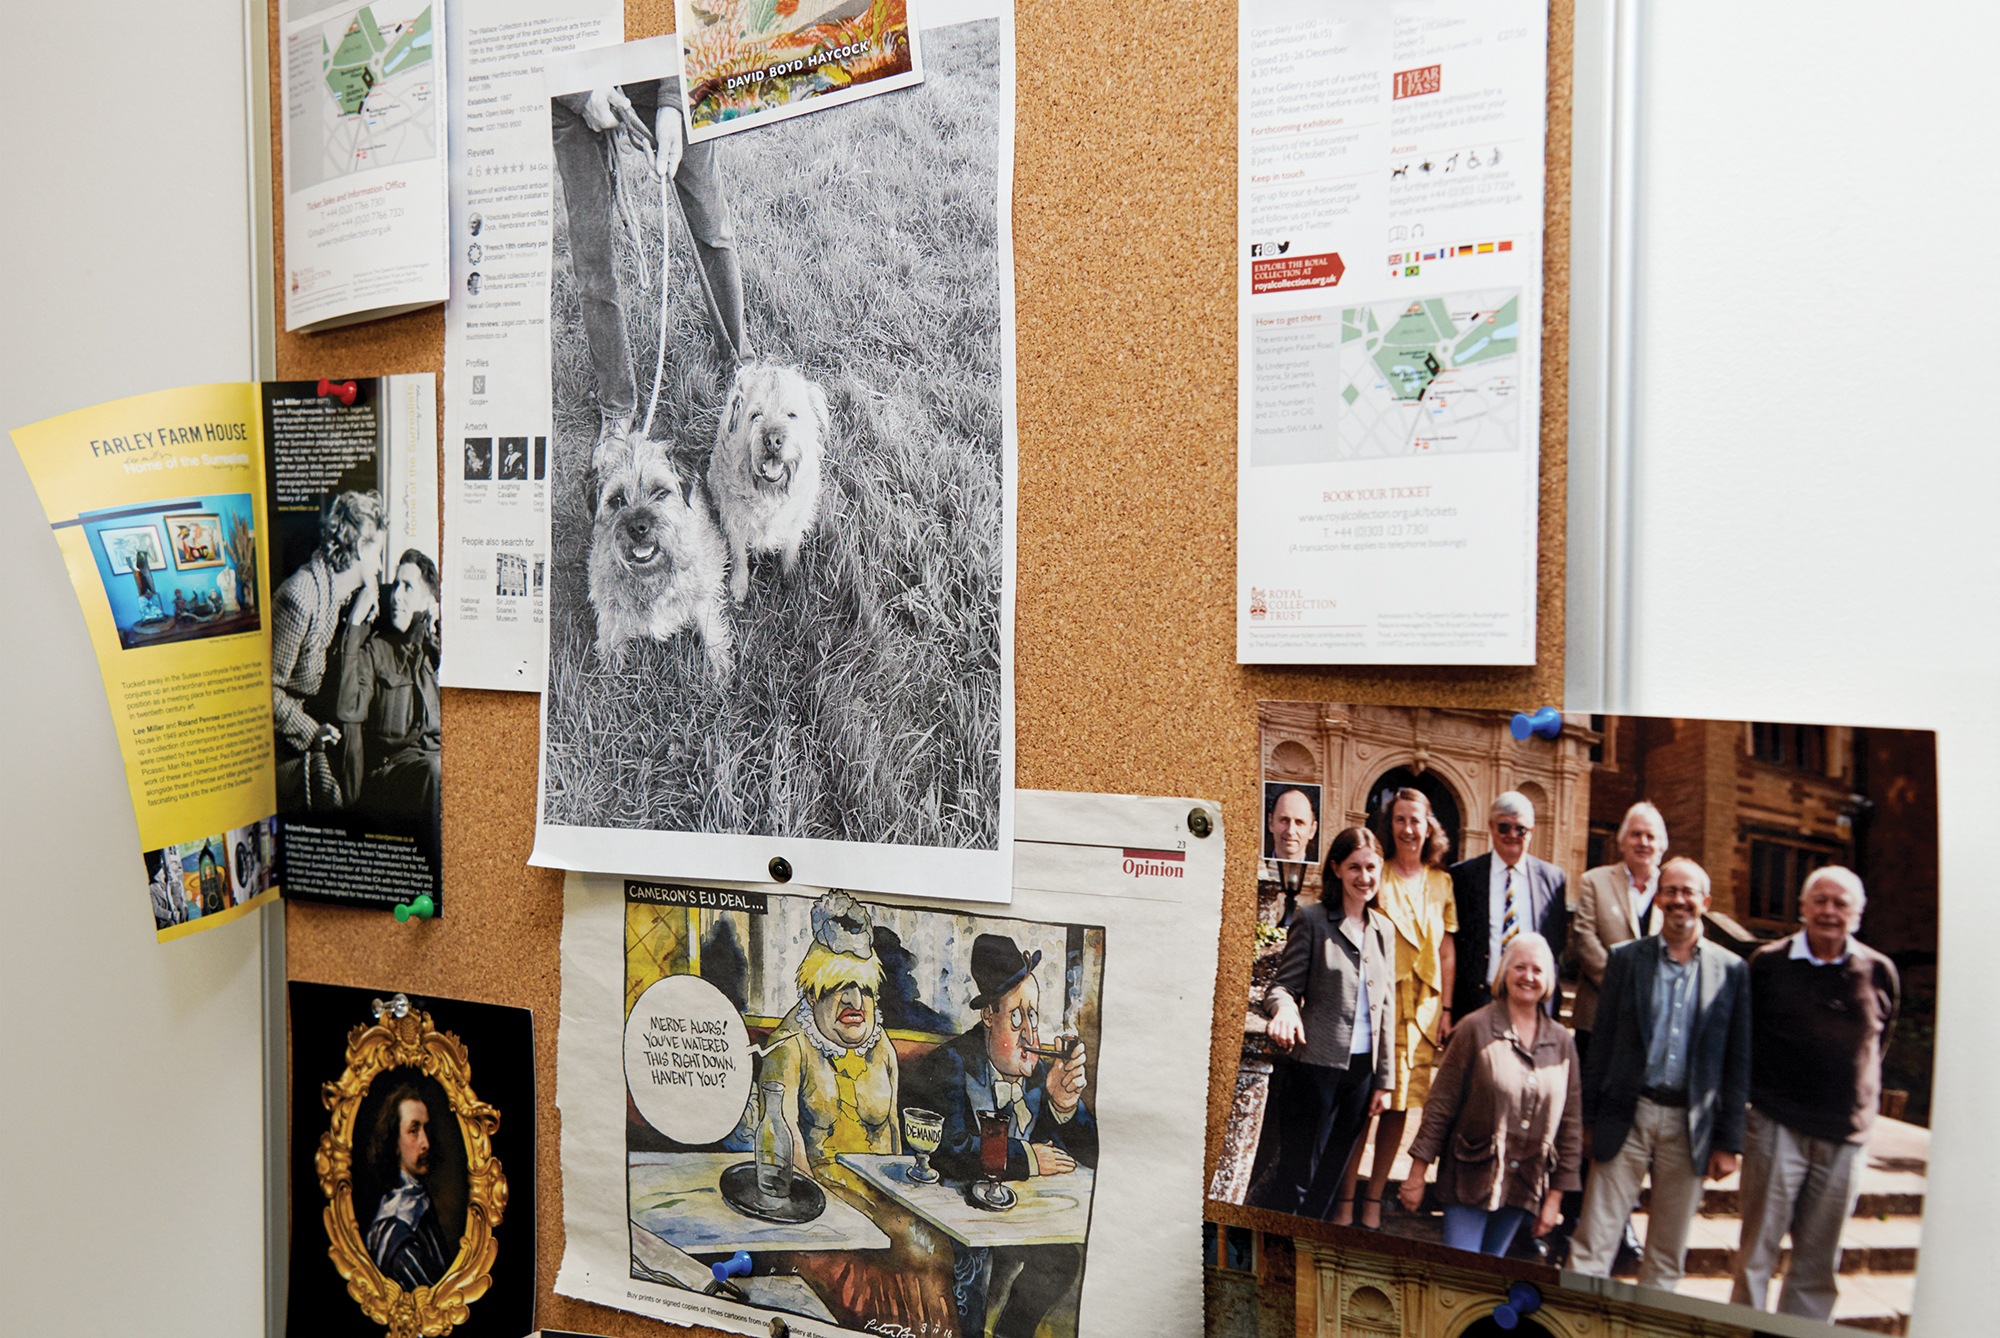 A bulletin board with a smattering old photos and newspaper clippings.